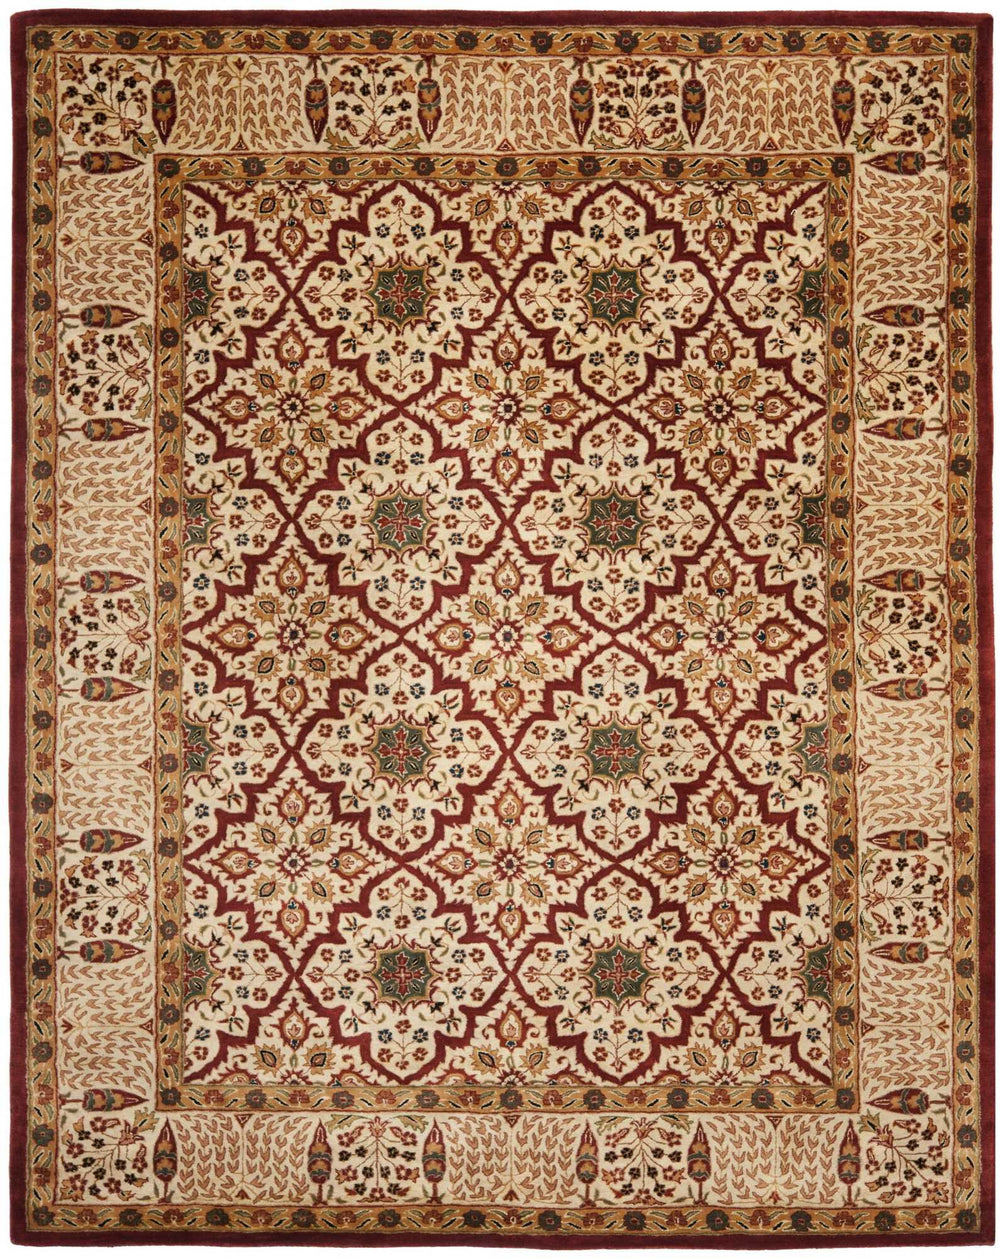 Safavieh Persian Legend PL521 Area Rug